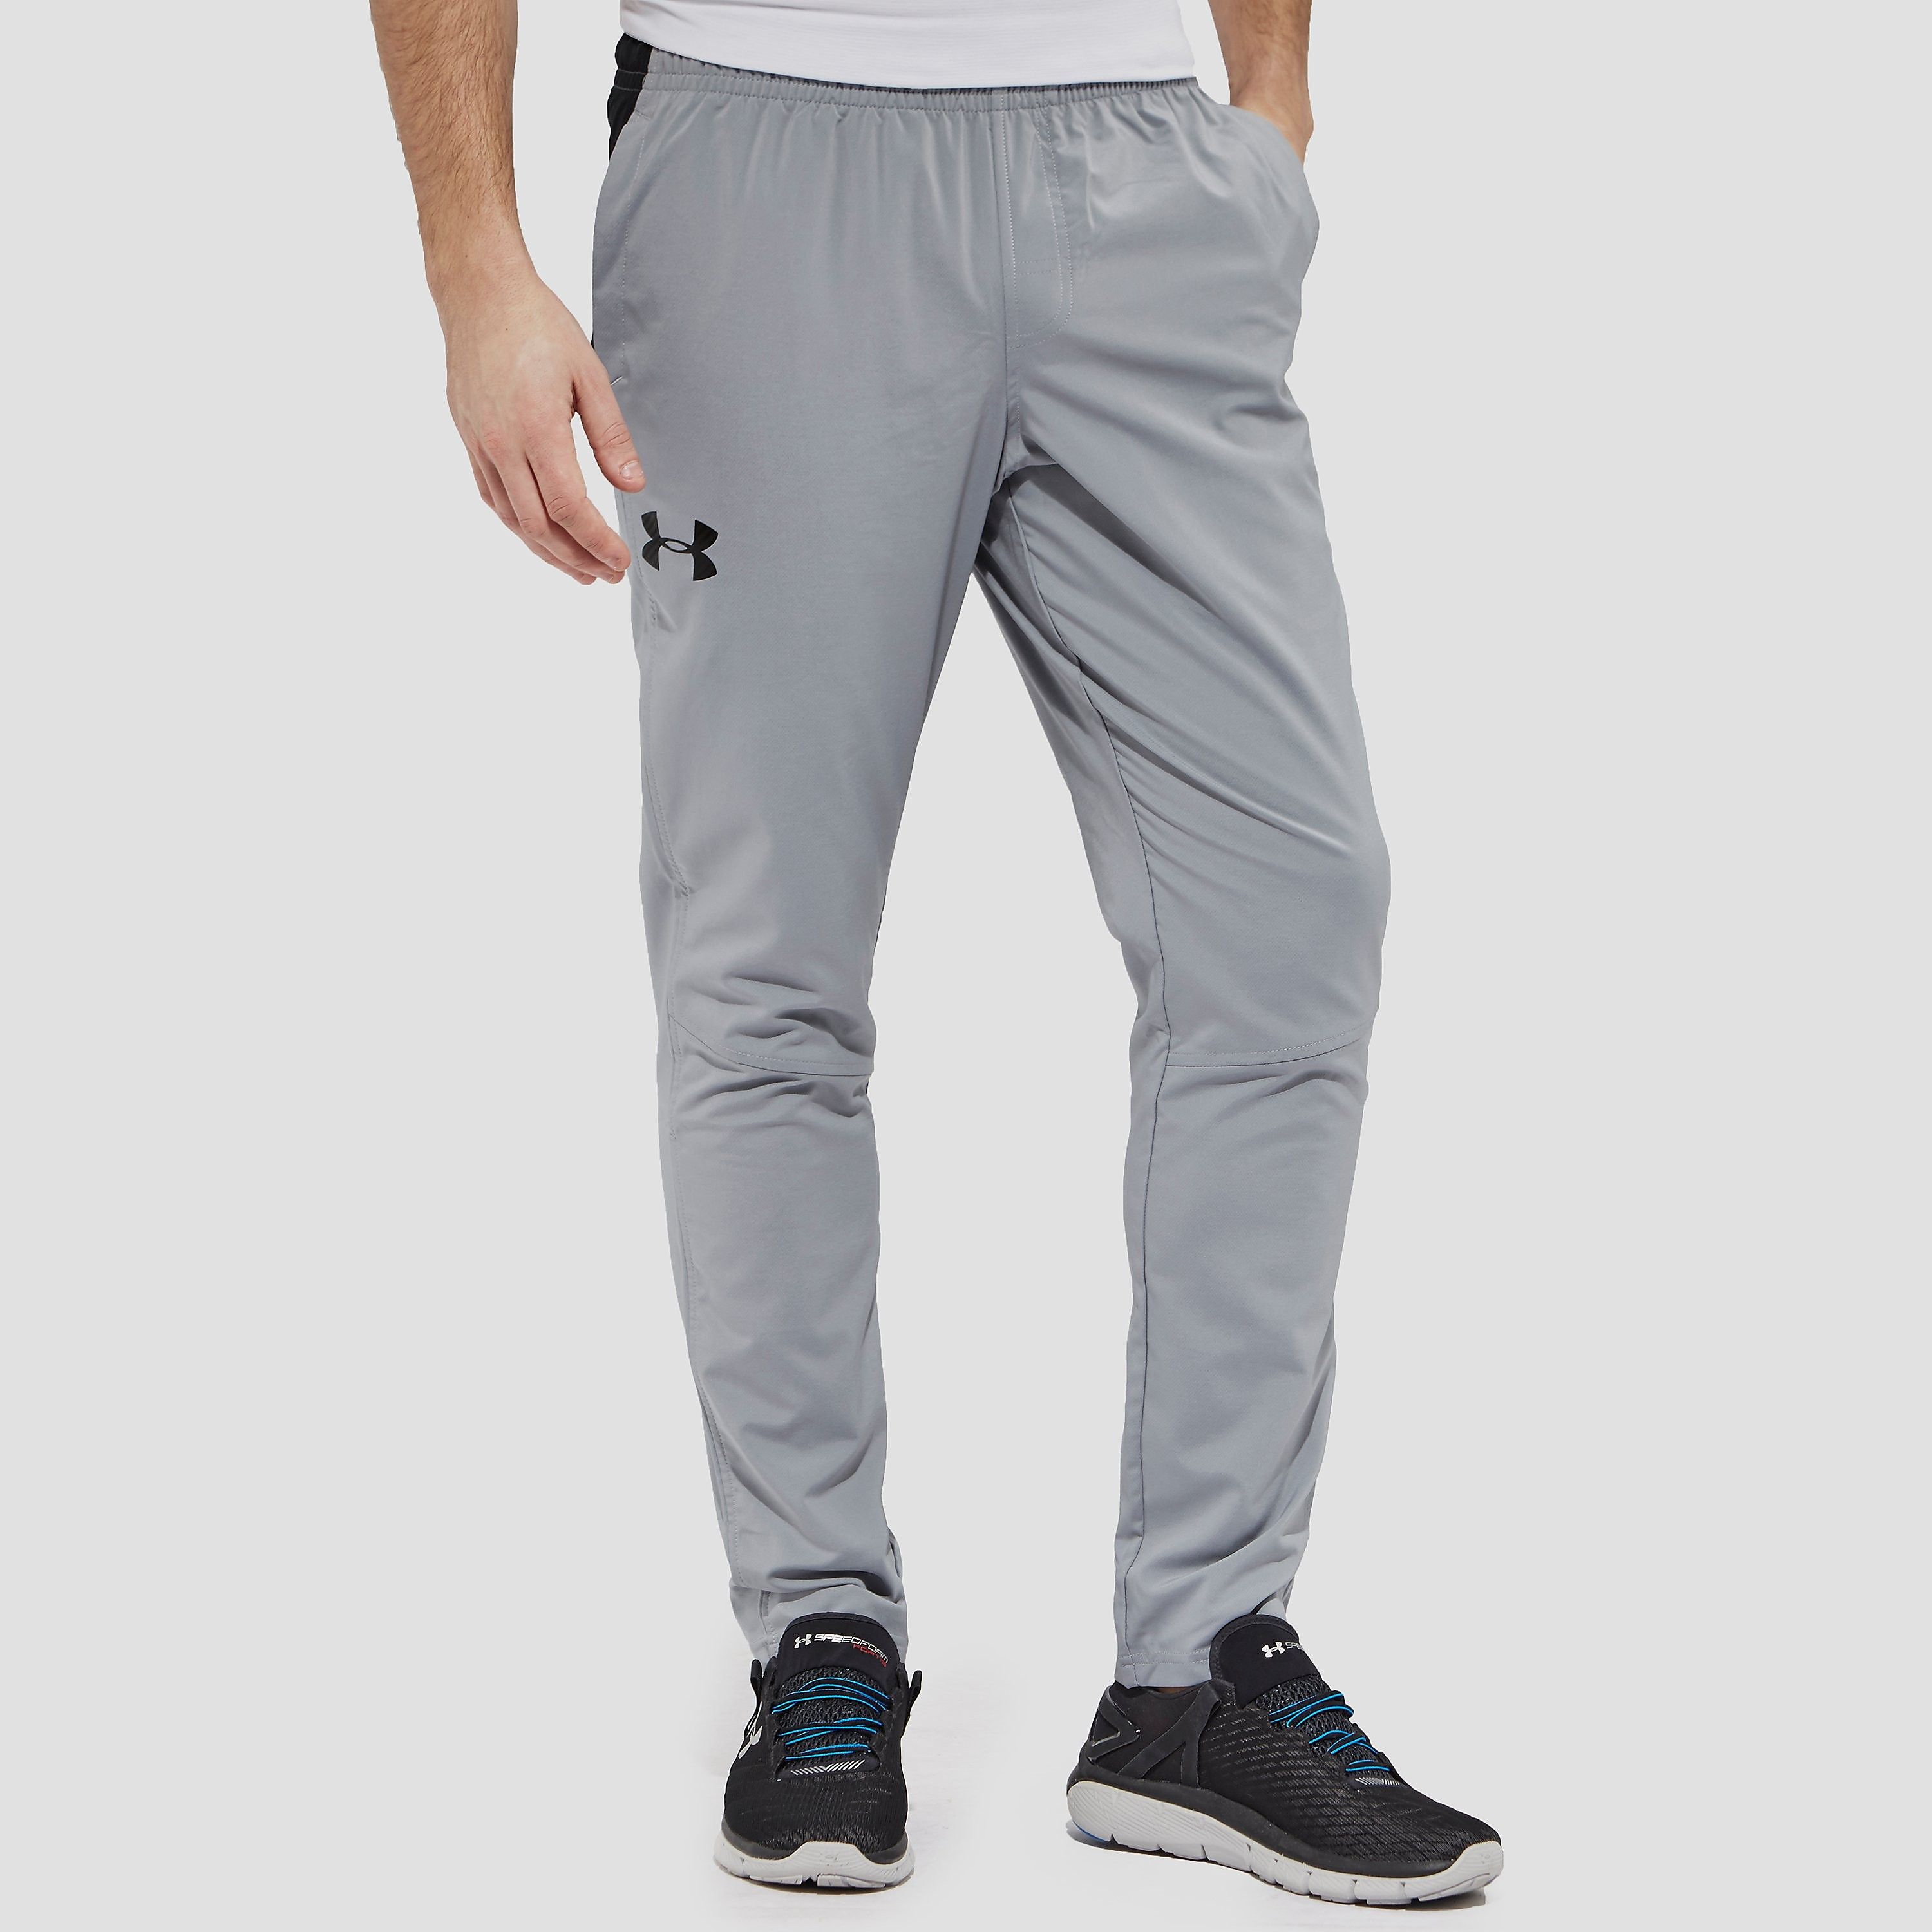 Under Armour Men's HIIT Woven Pants